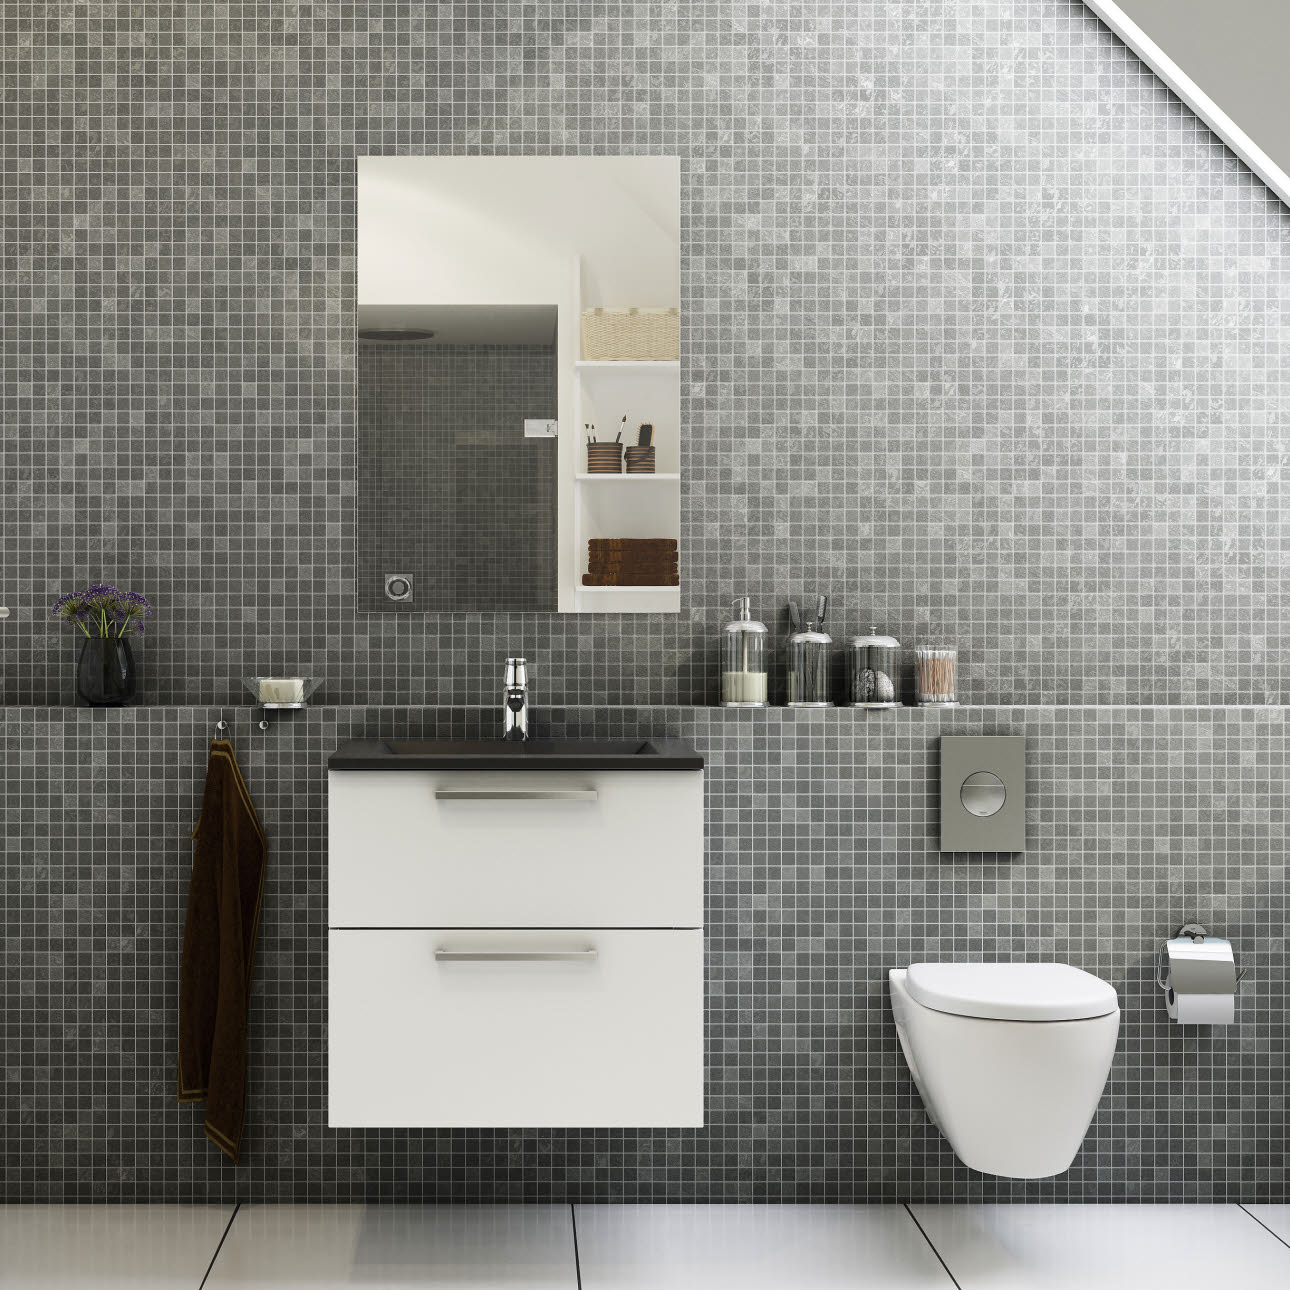 Bathroom from HTH